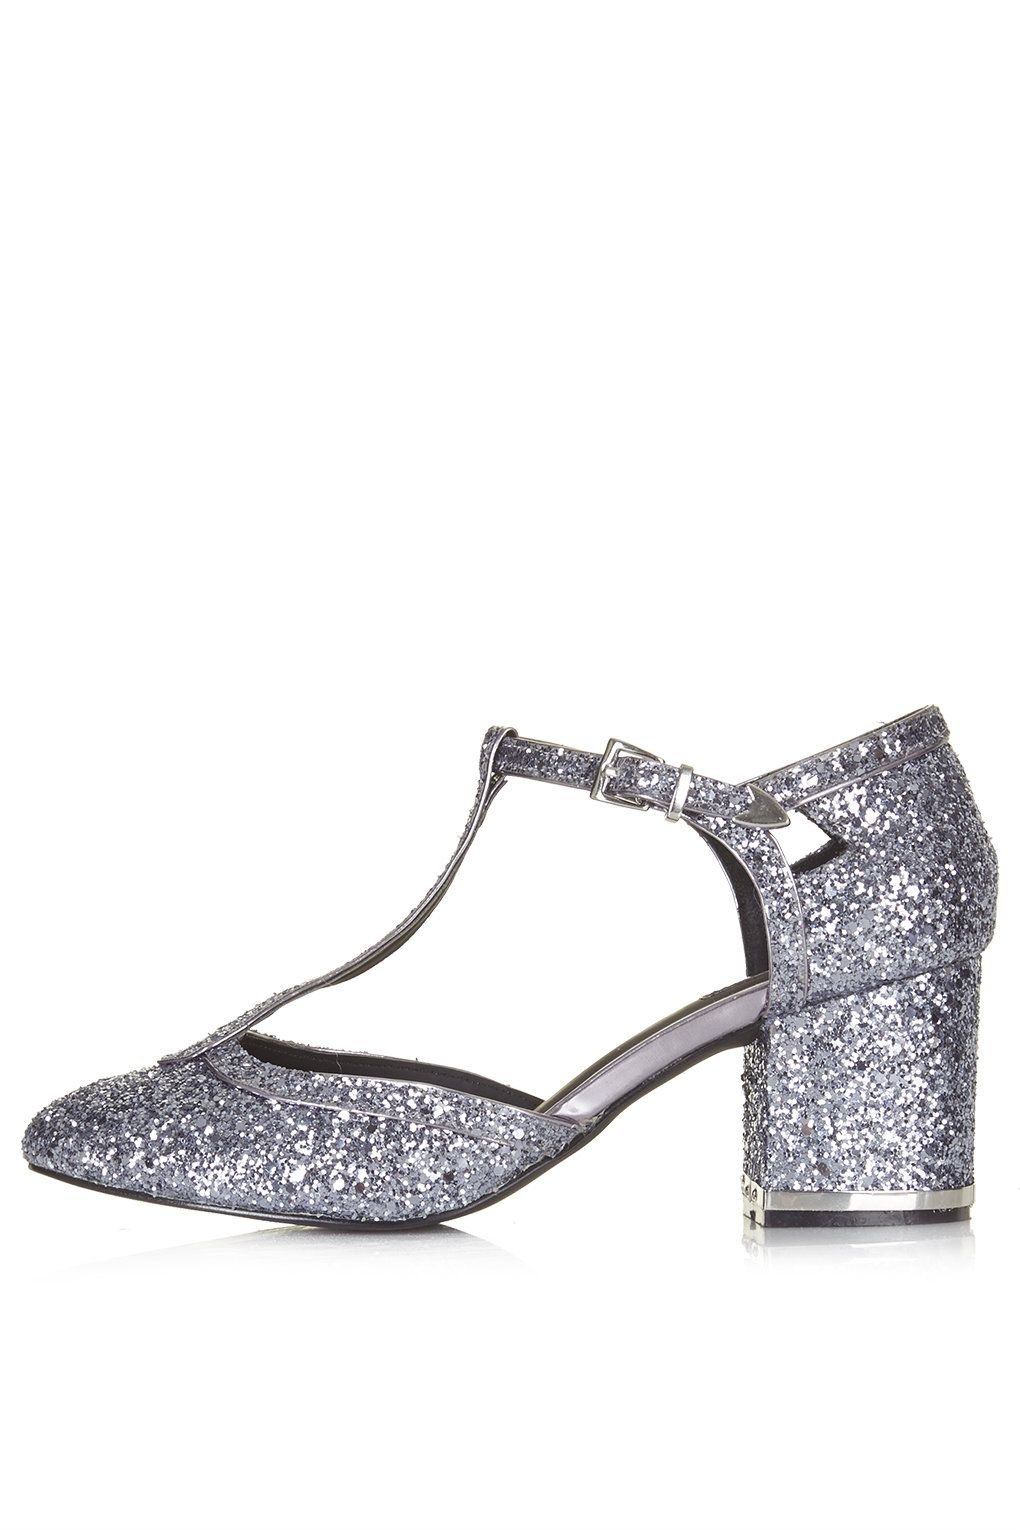 JOYFUL Glitter T-Bar Mid Heels - Heels - Shoes | Party shoes ...